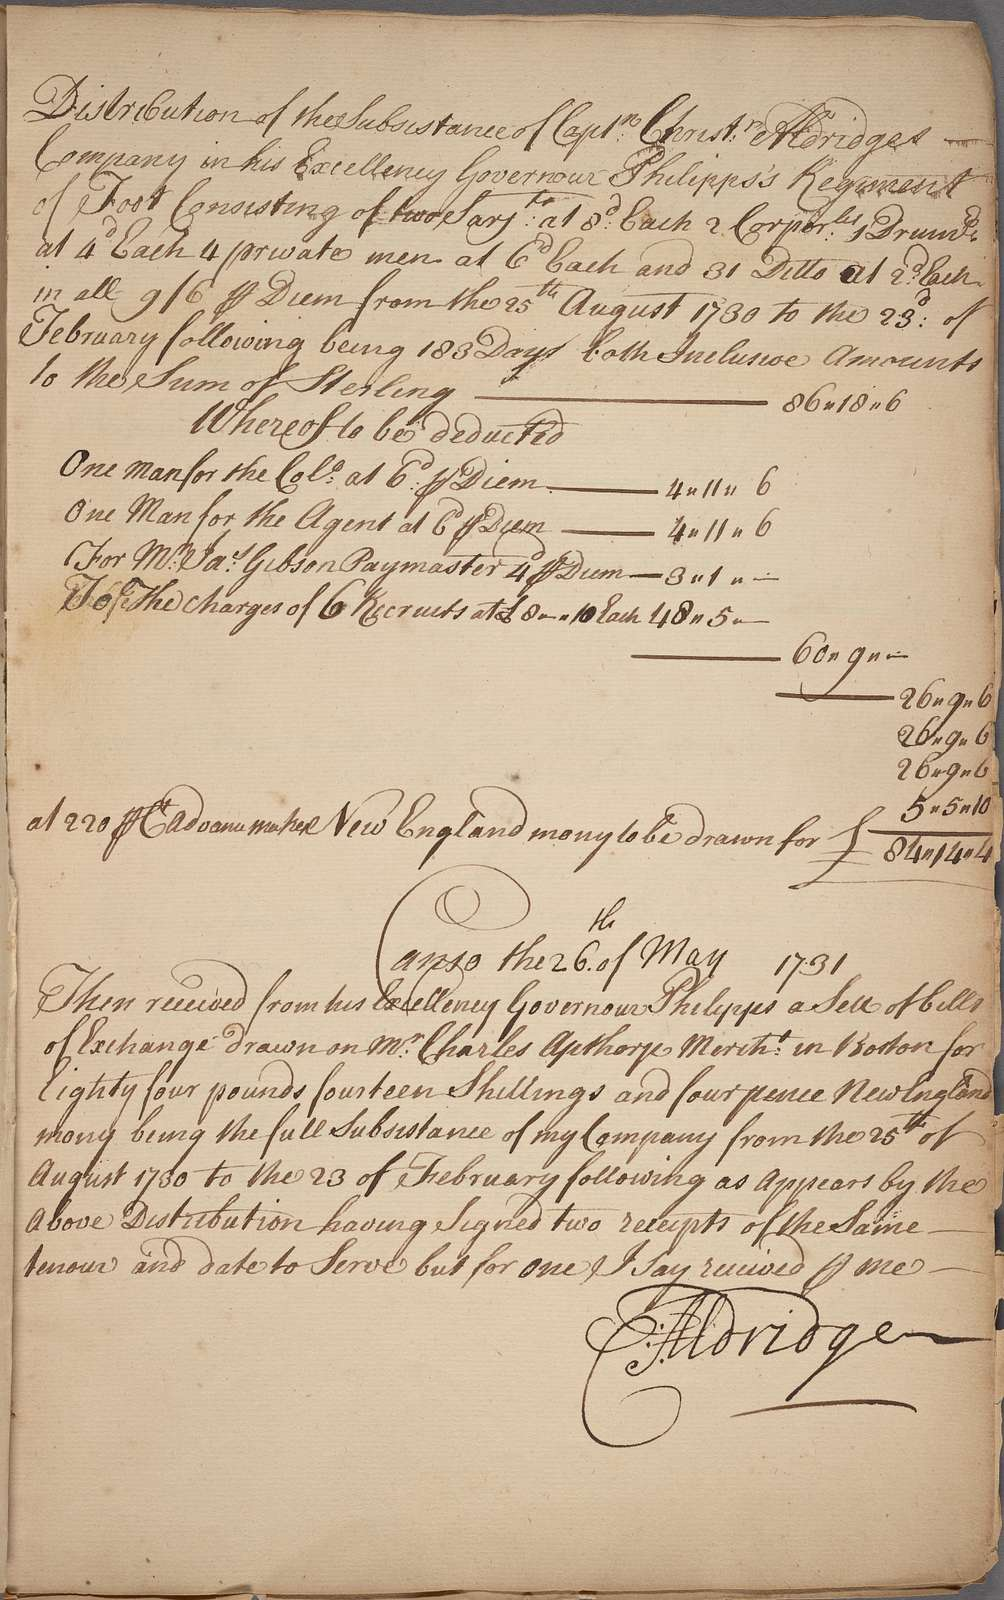 Canso, [Nova Scotia,] 1729–1731. Subsistence accounts of the companies commanded by Lawrence Armstrong, Christopher Aldridge, James Mitford, and Francis Cavally, in Governor Philipps' Regiment of Foot, from Aug. 24, 1729, to Aug. 24, 1731